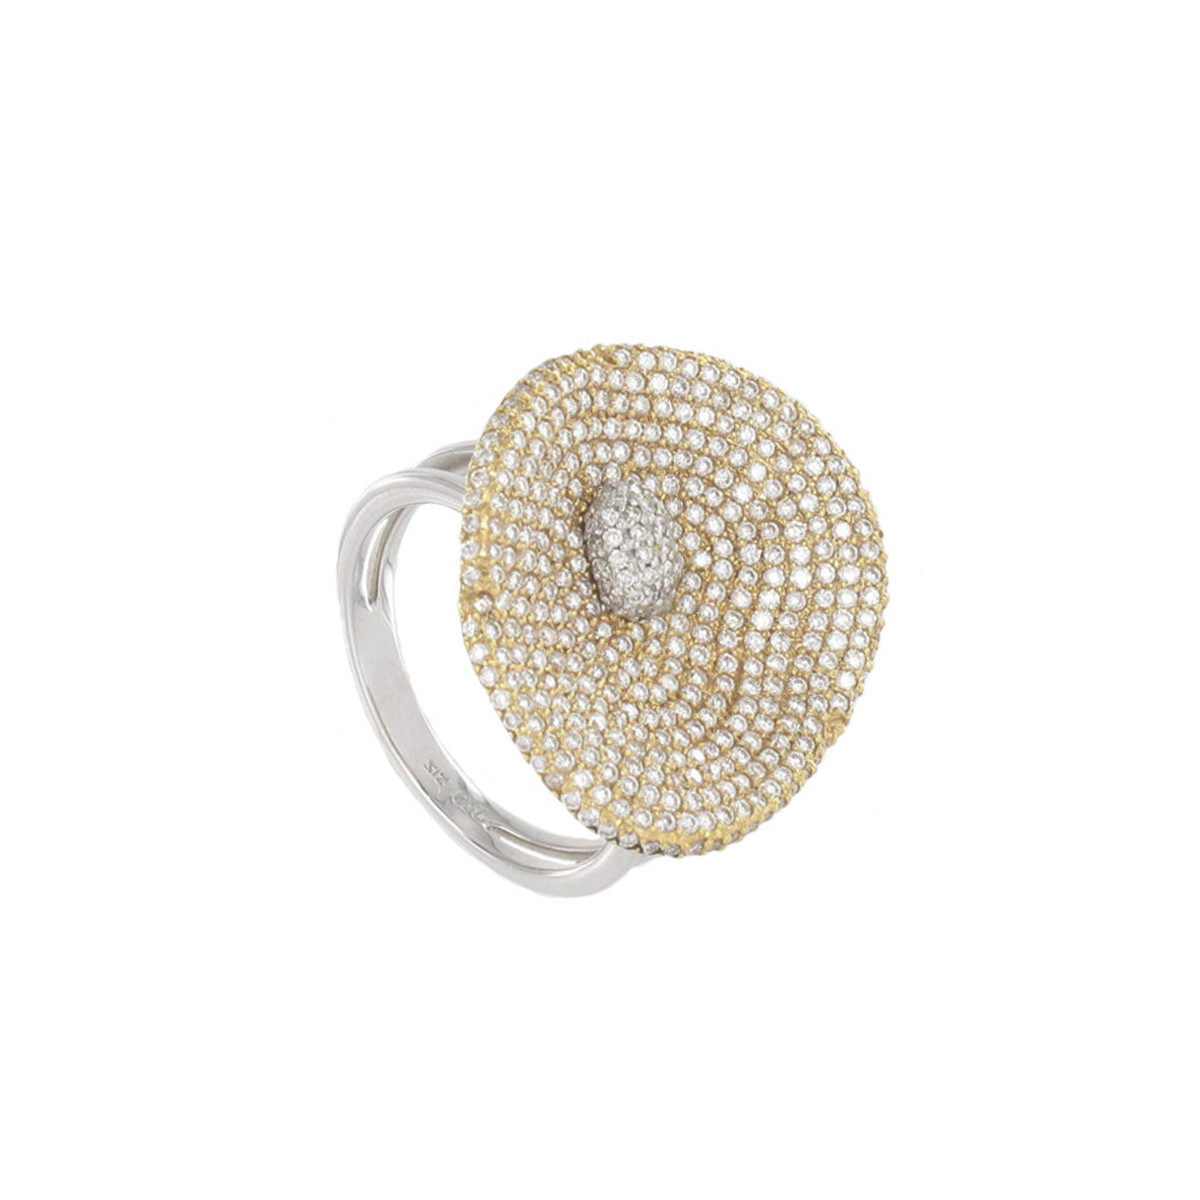 TWO GOLD AND DIAMOND PAVE RING